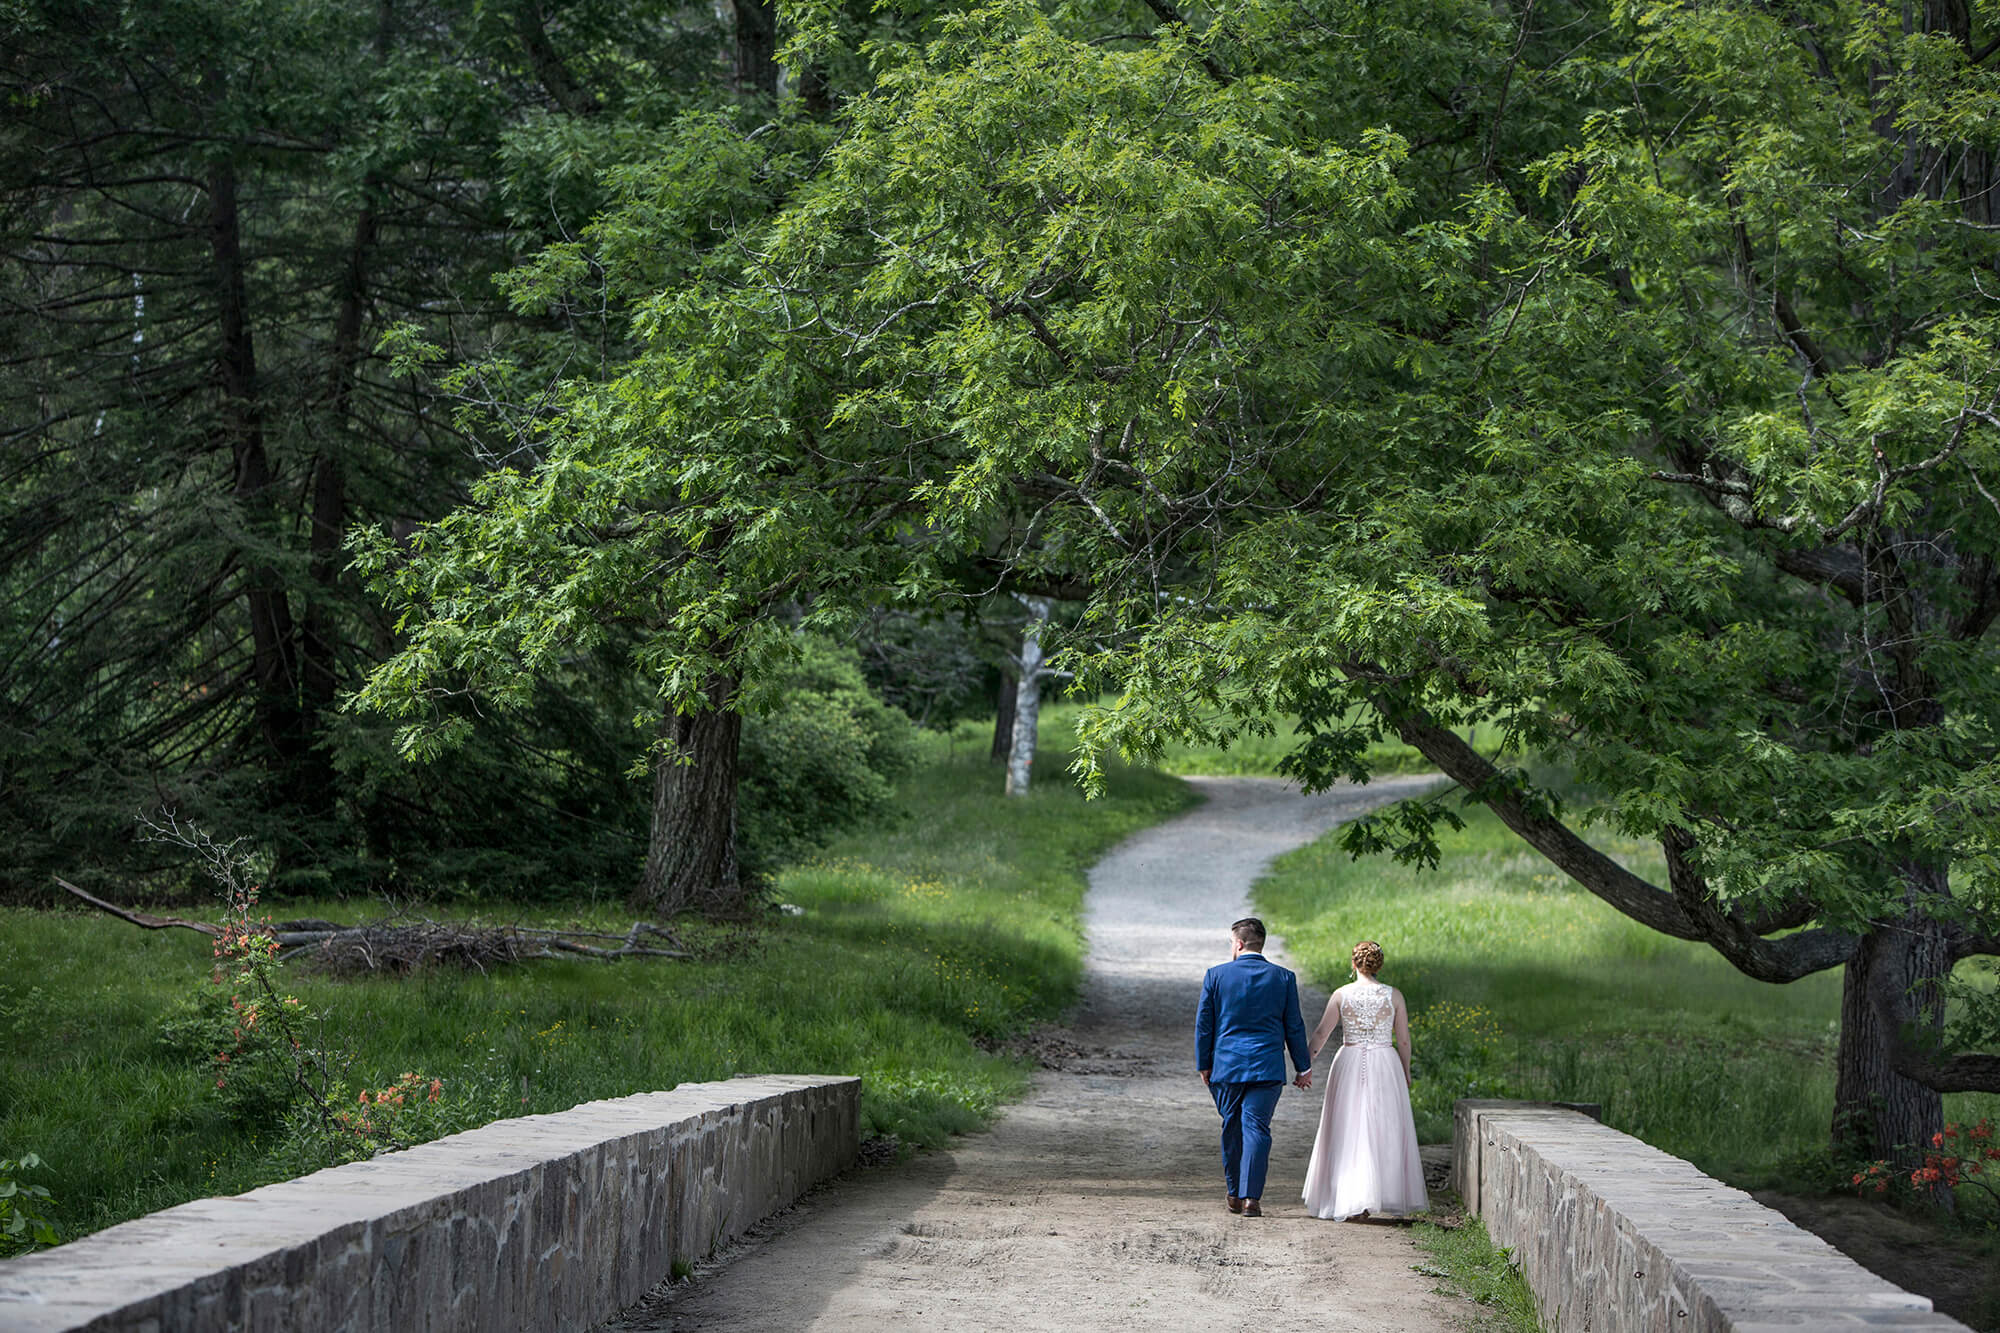 Wedding photography of a bride and groom holding hands walking away over a stone bridge